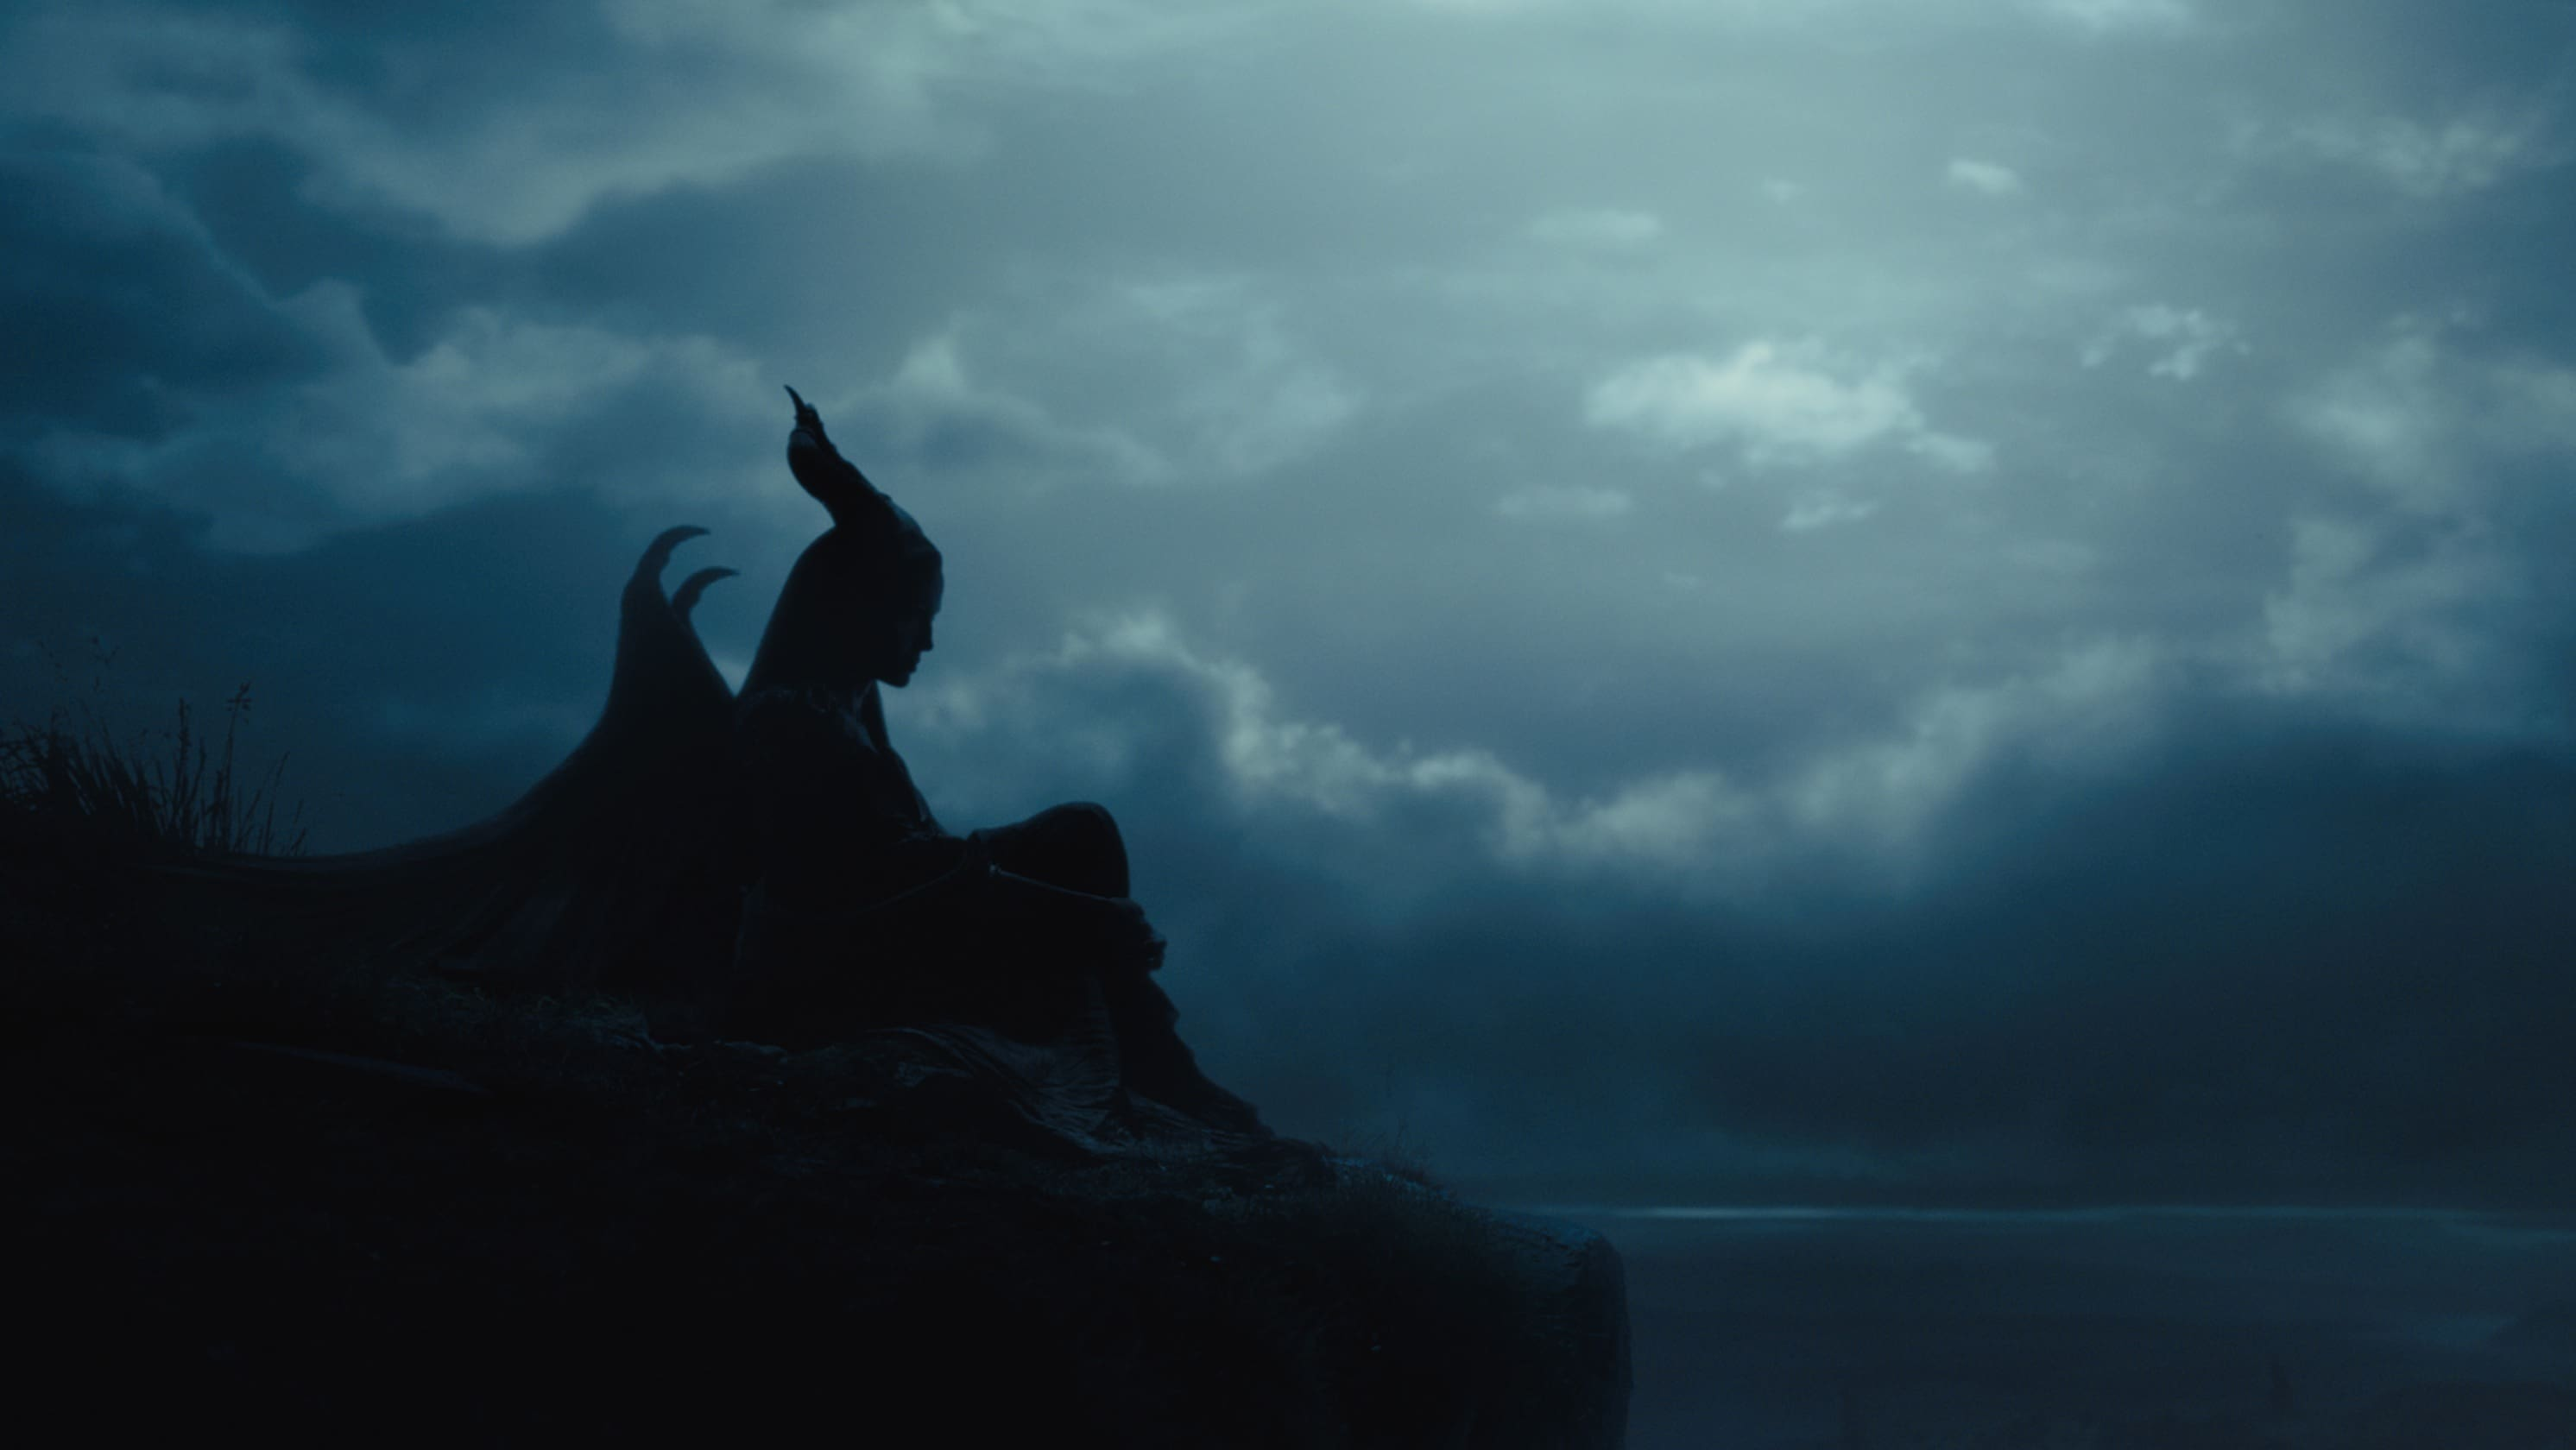 """The silhouette of Angelina Jolie as Maleficent sitting on a rock in the movie """"Maleficent"""""""